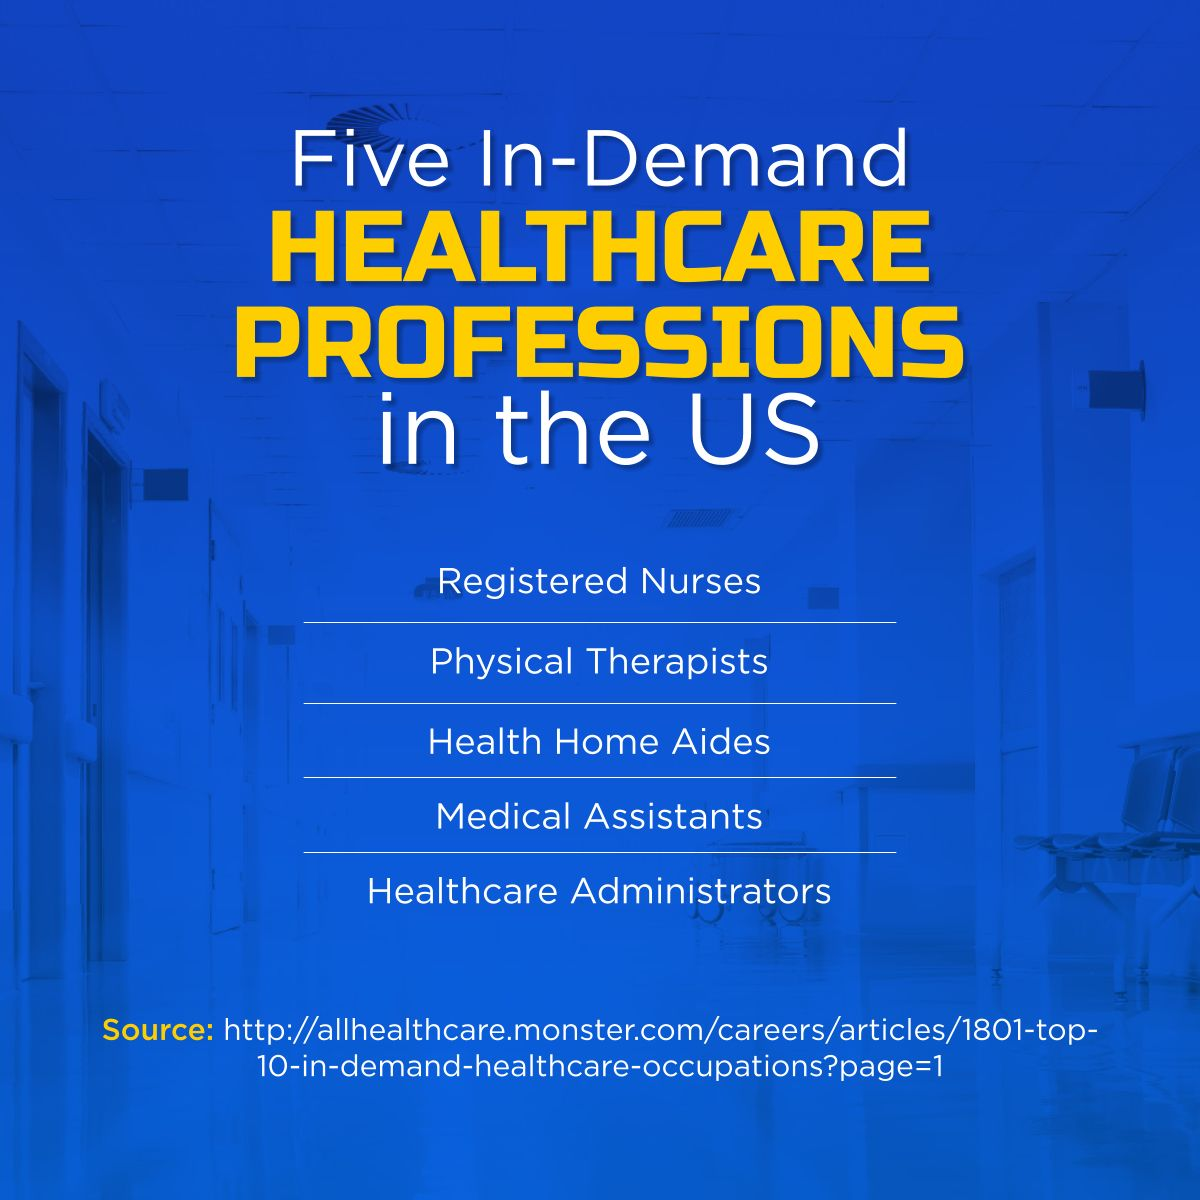 Five InDemand Healthcare Professions in the US